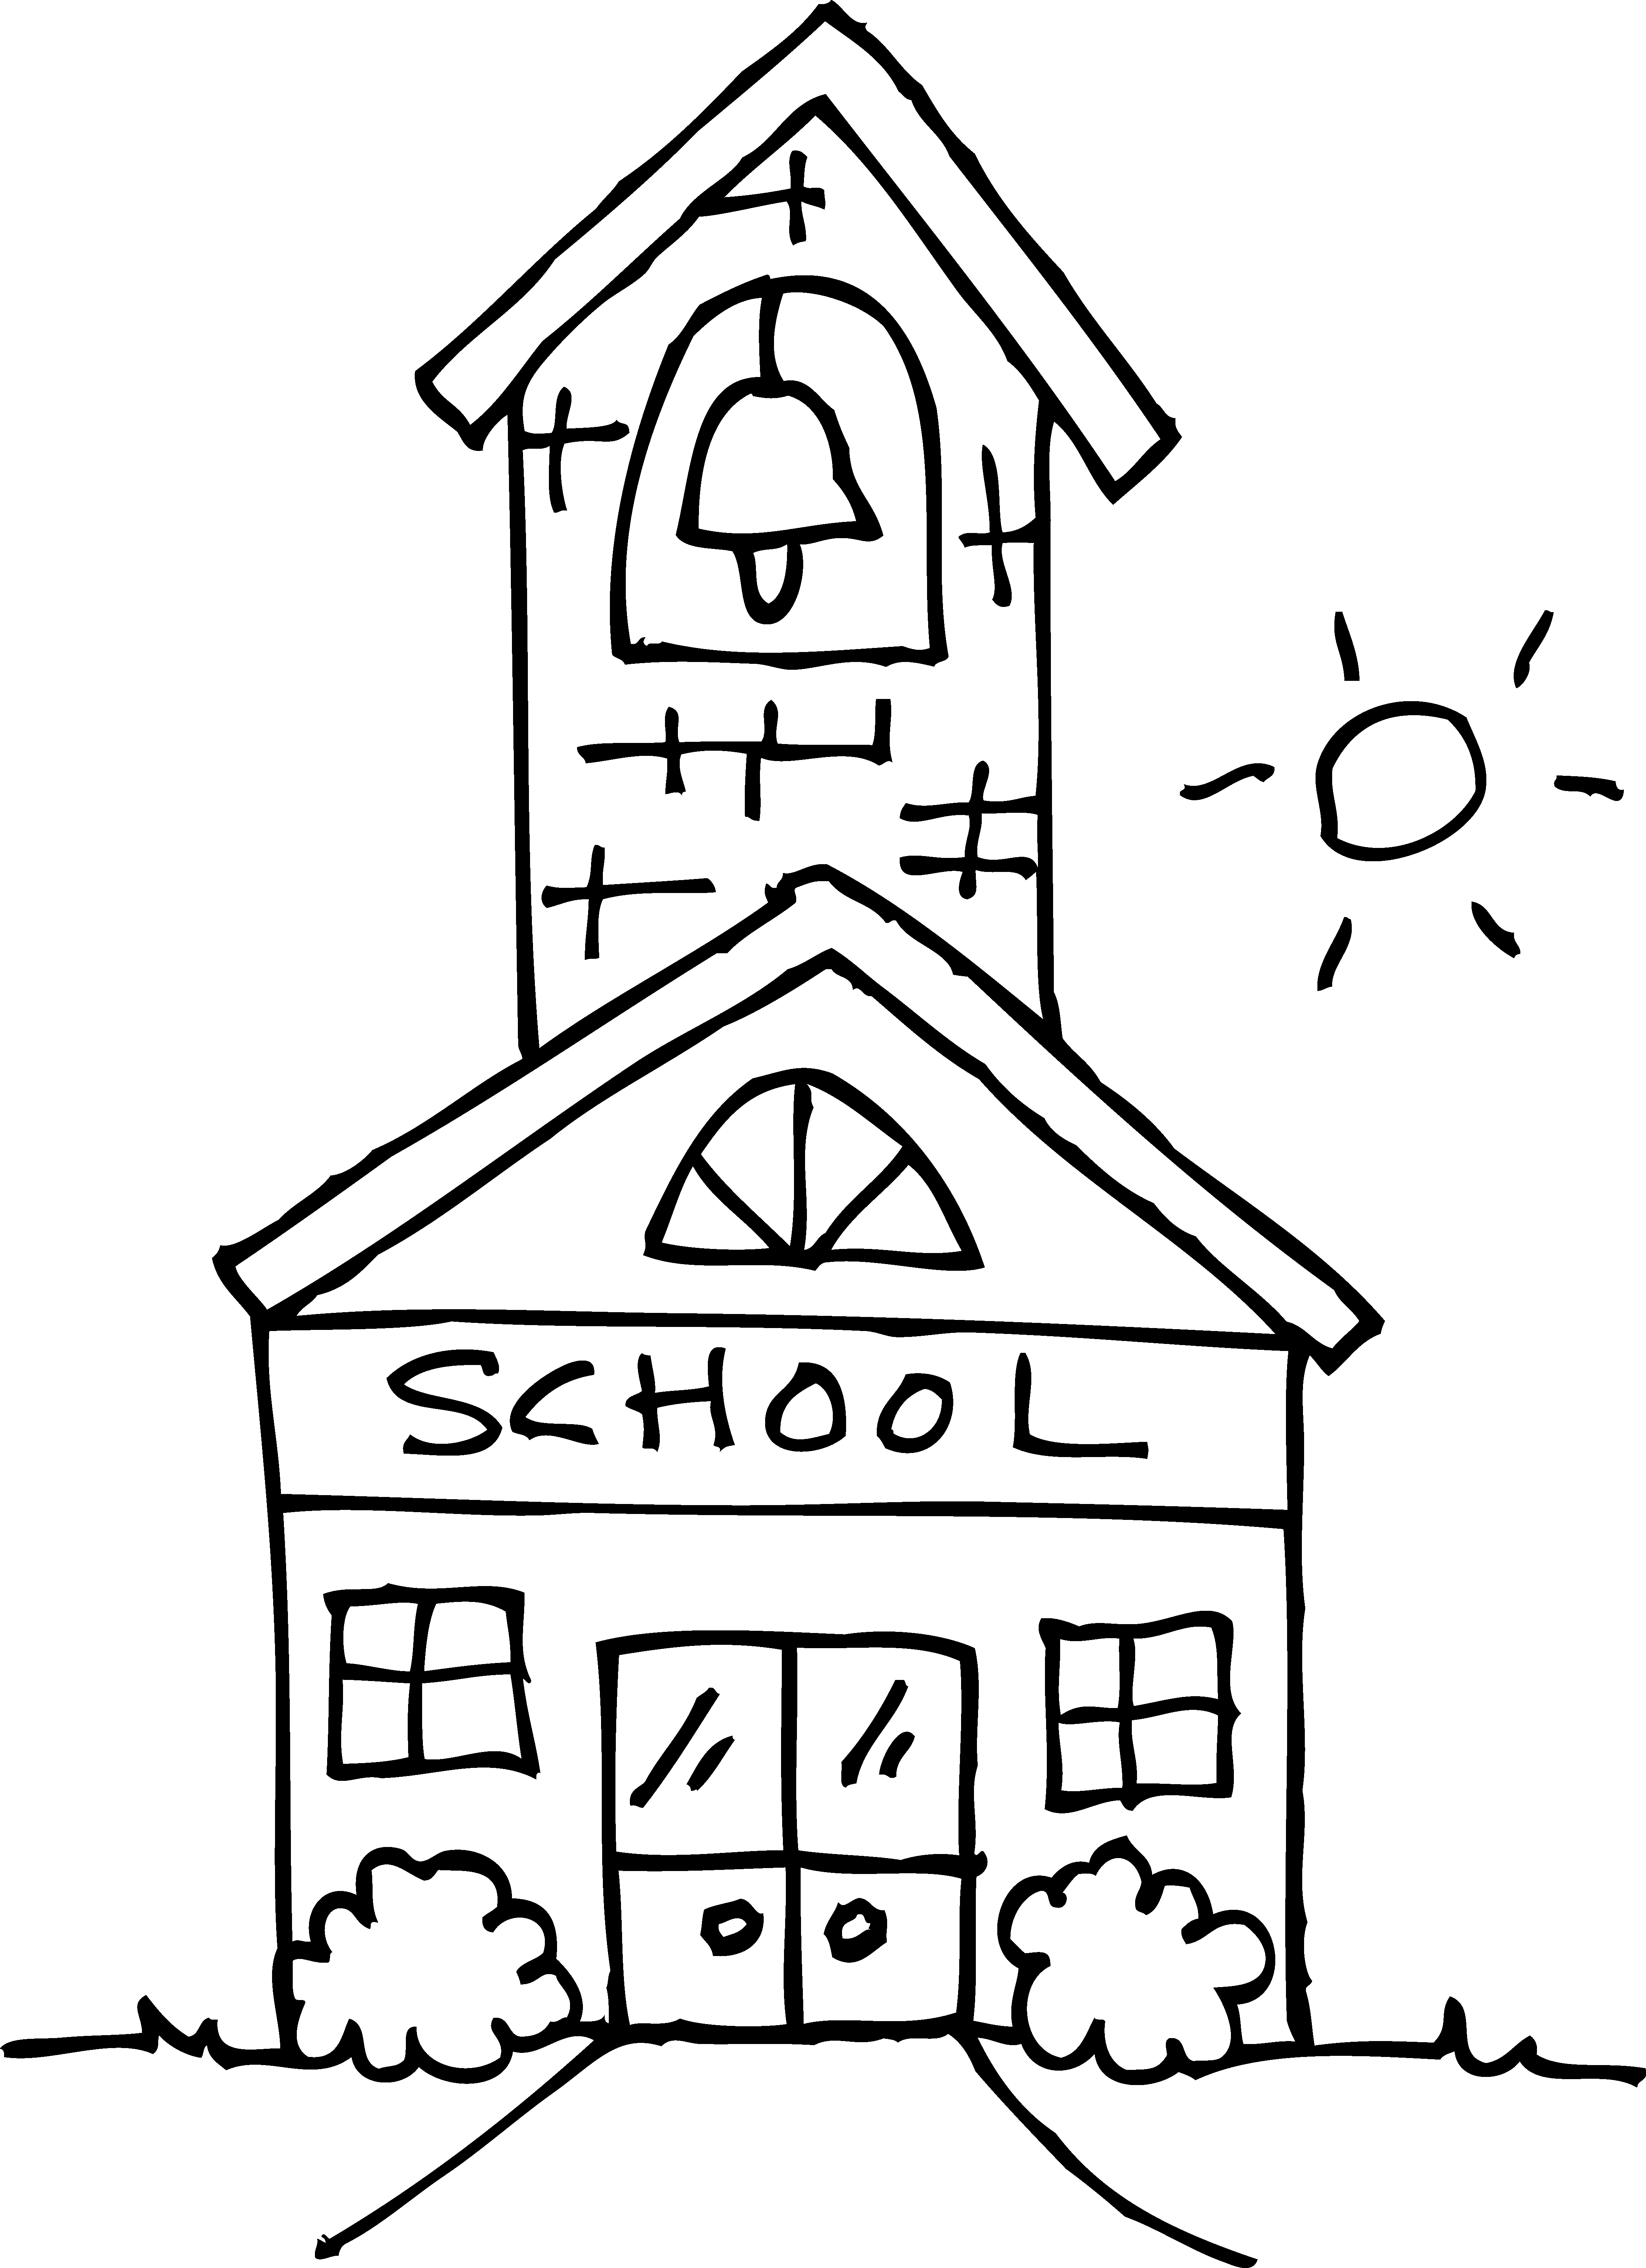 Kid school house clipart black and white png transparent download Free Pictures Of School House, Download Free Clip Art, Free Clip Art ... png transparent download